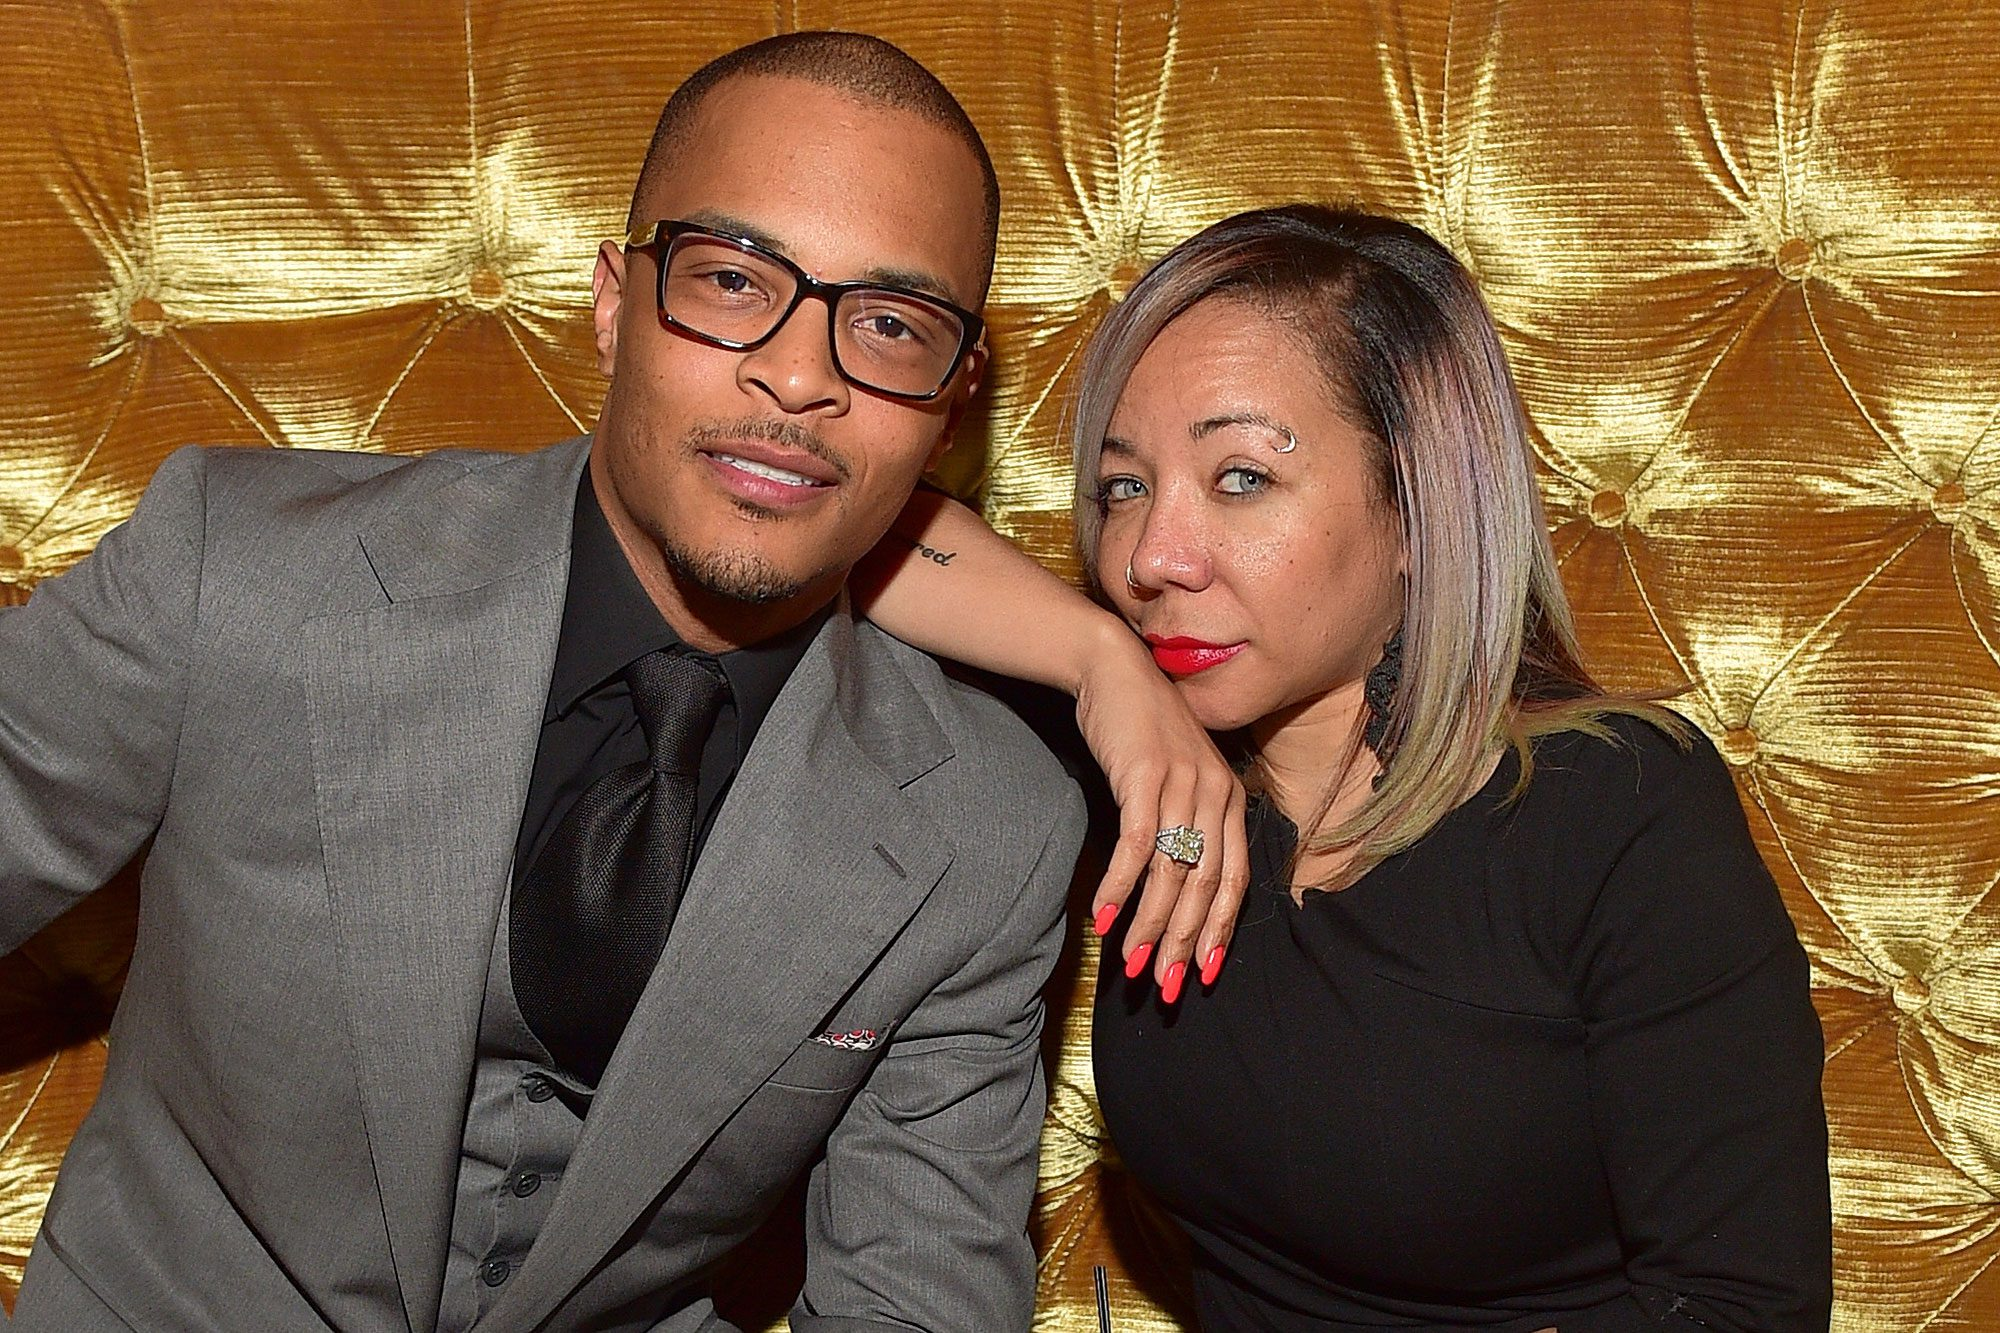 T.I. Troubles Escalate With Sexual Assault Allegations